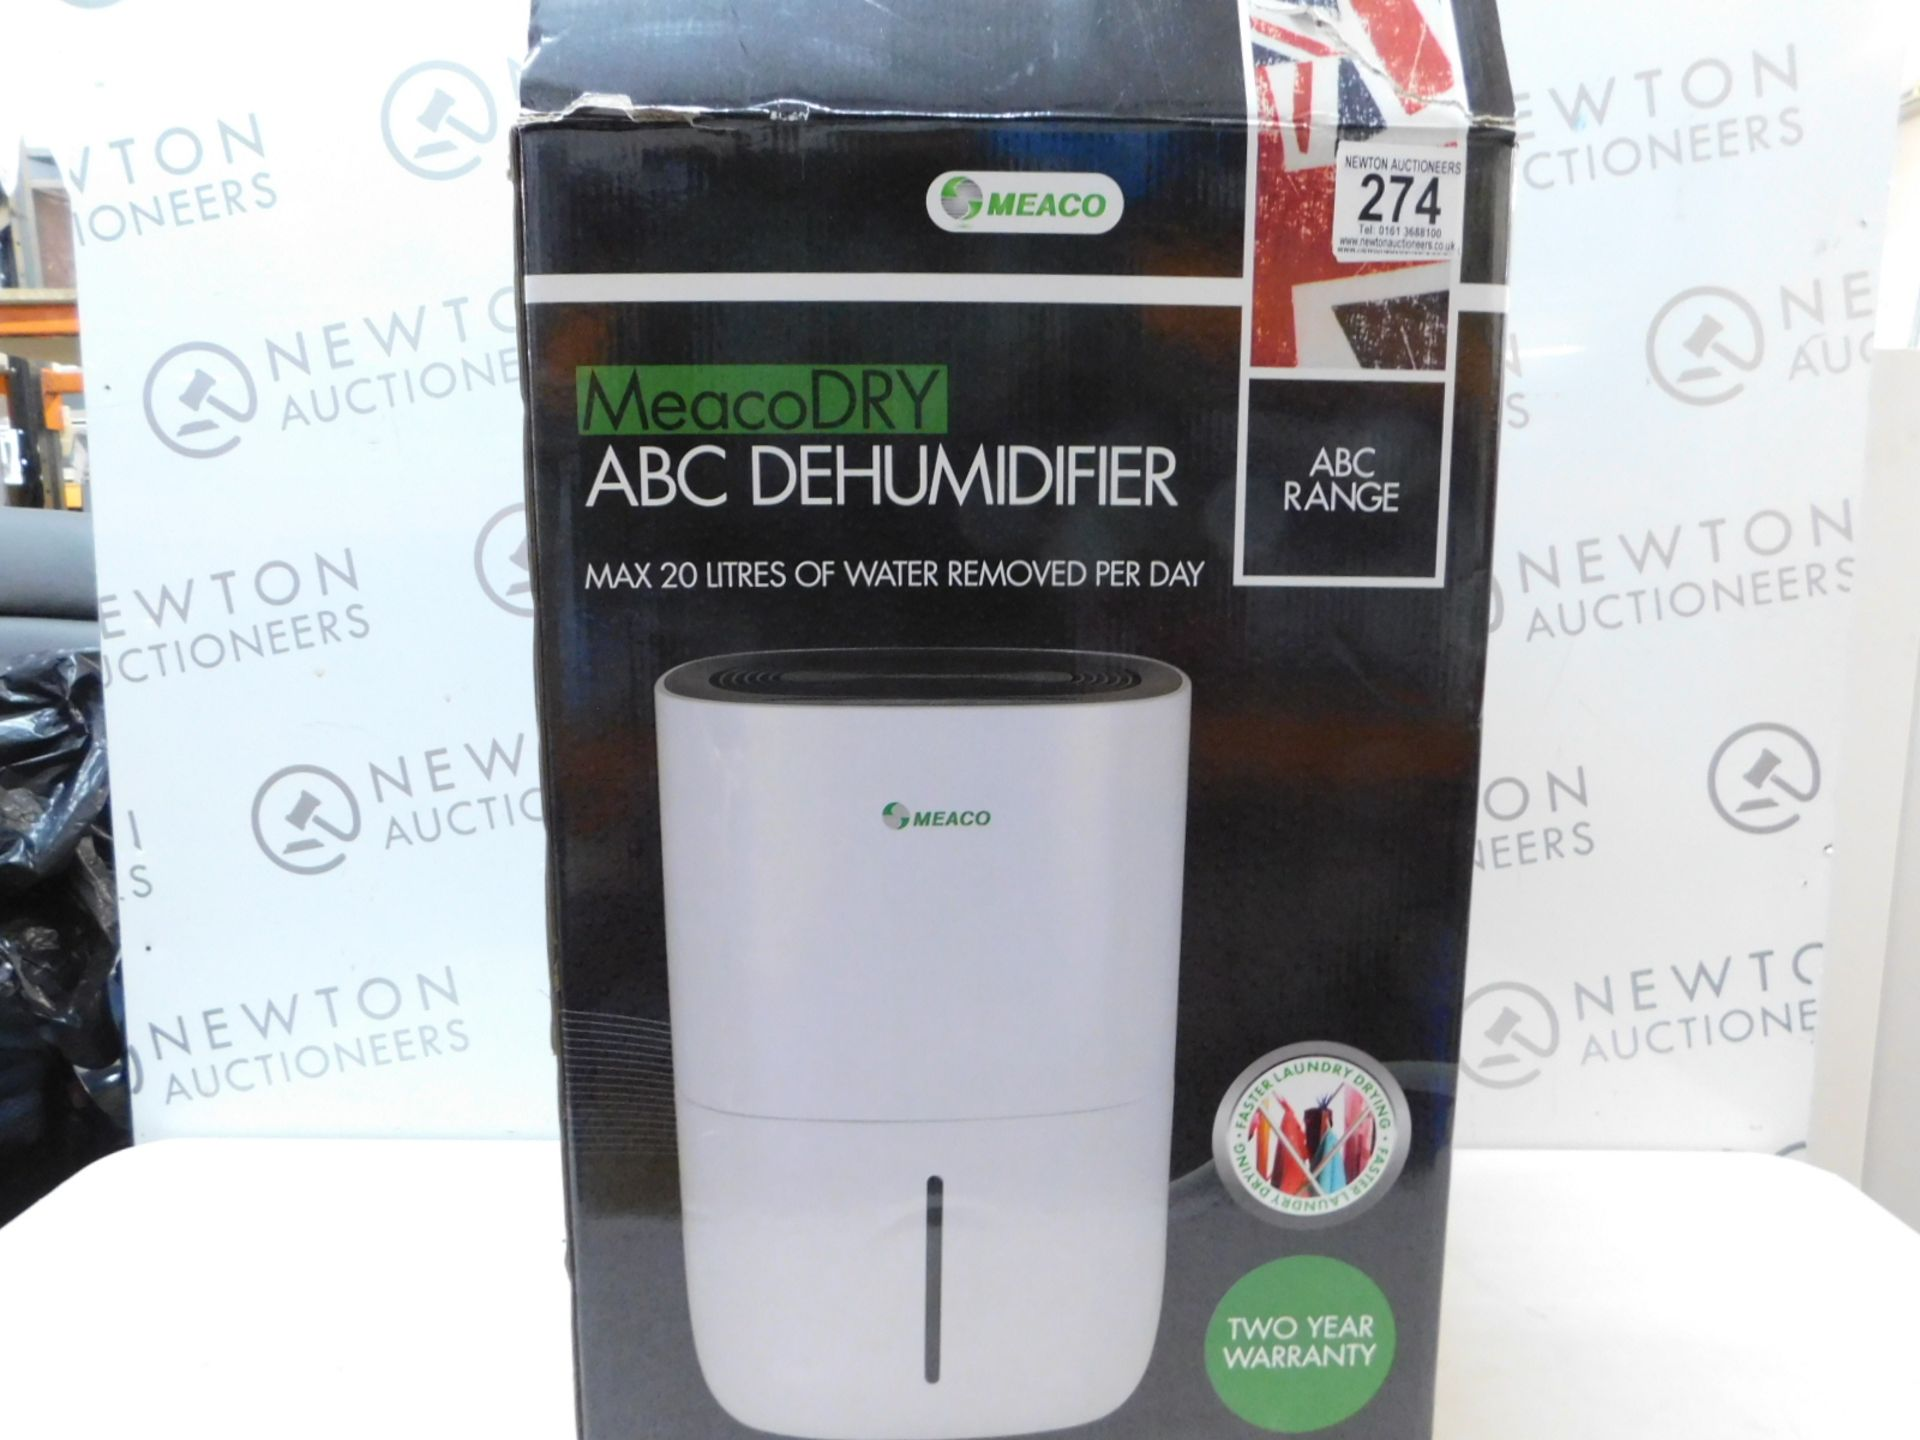 Lot 274 - 1 BOXED MEACODRY ABC DEHUMIDIFIER RRP £159.99